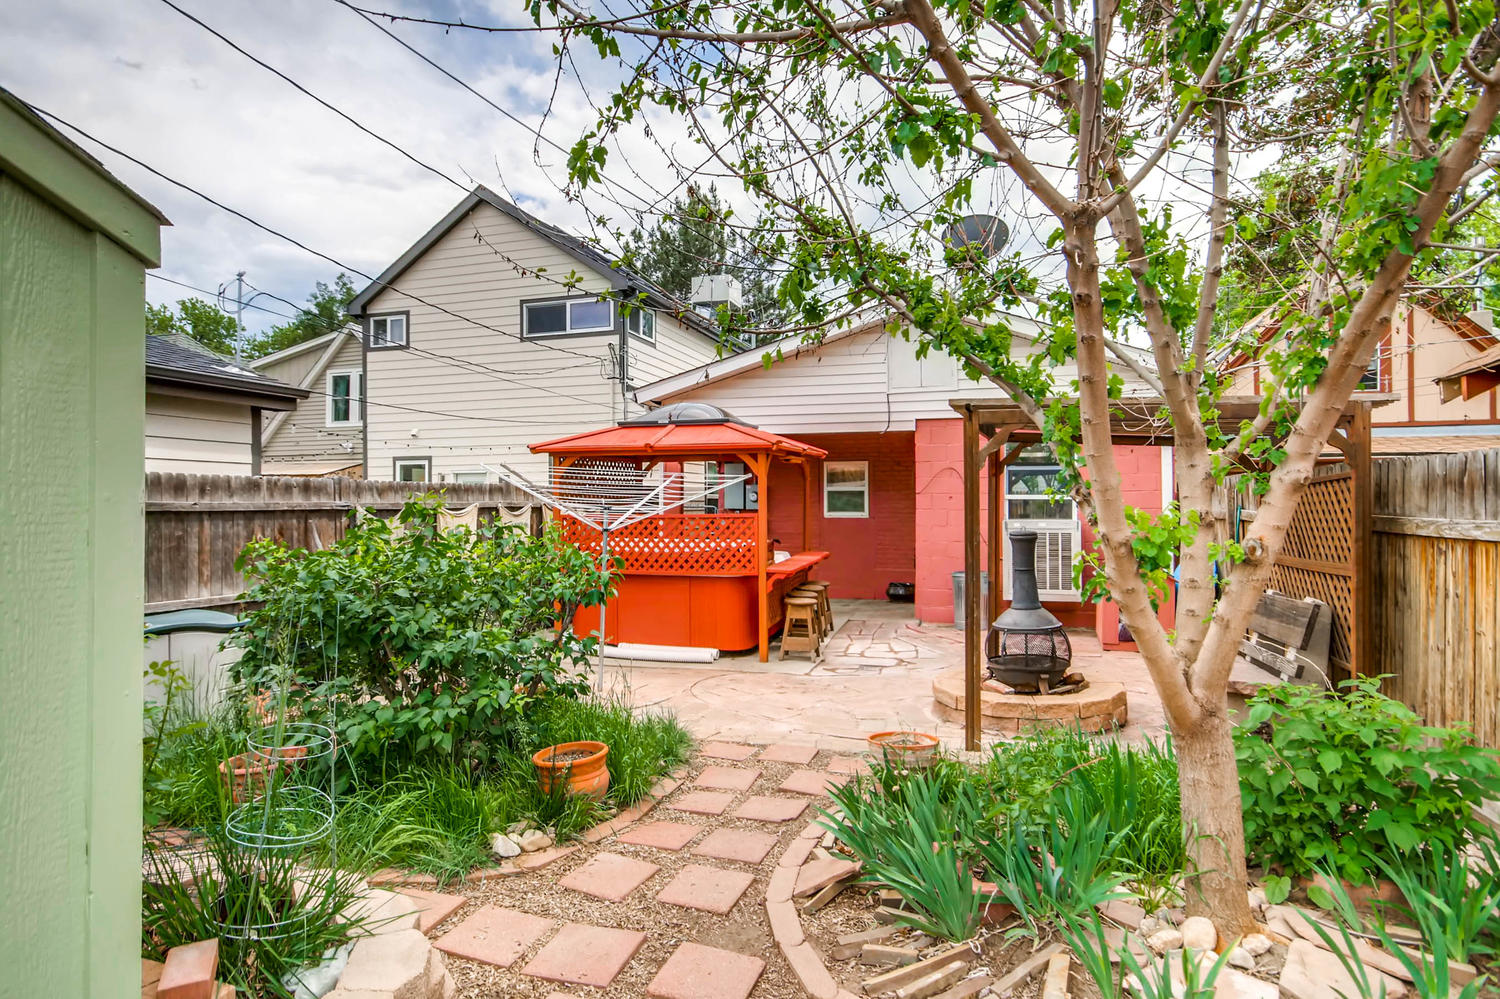 West Highland Neighborhood Home For Sale - 3445 W 34th Ave